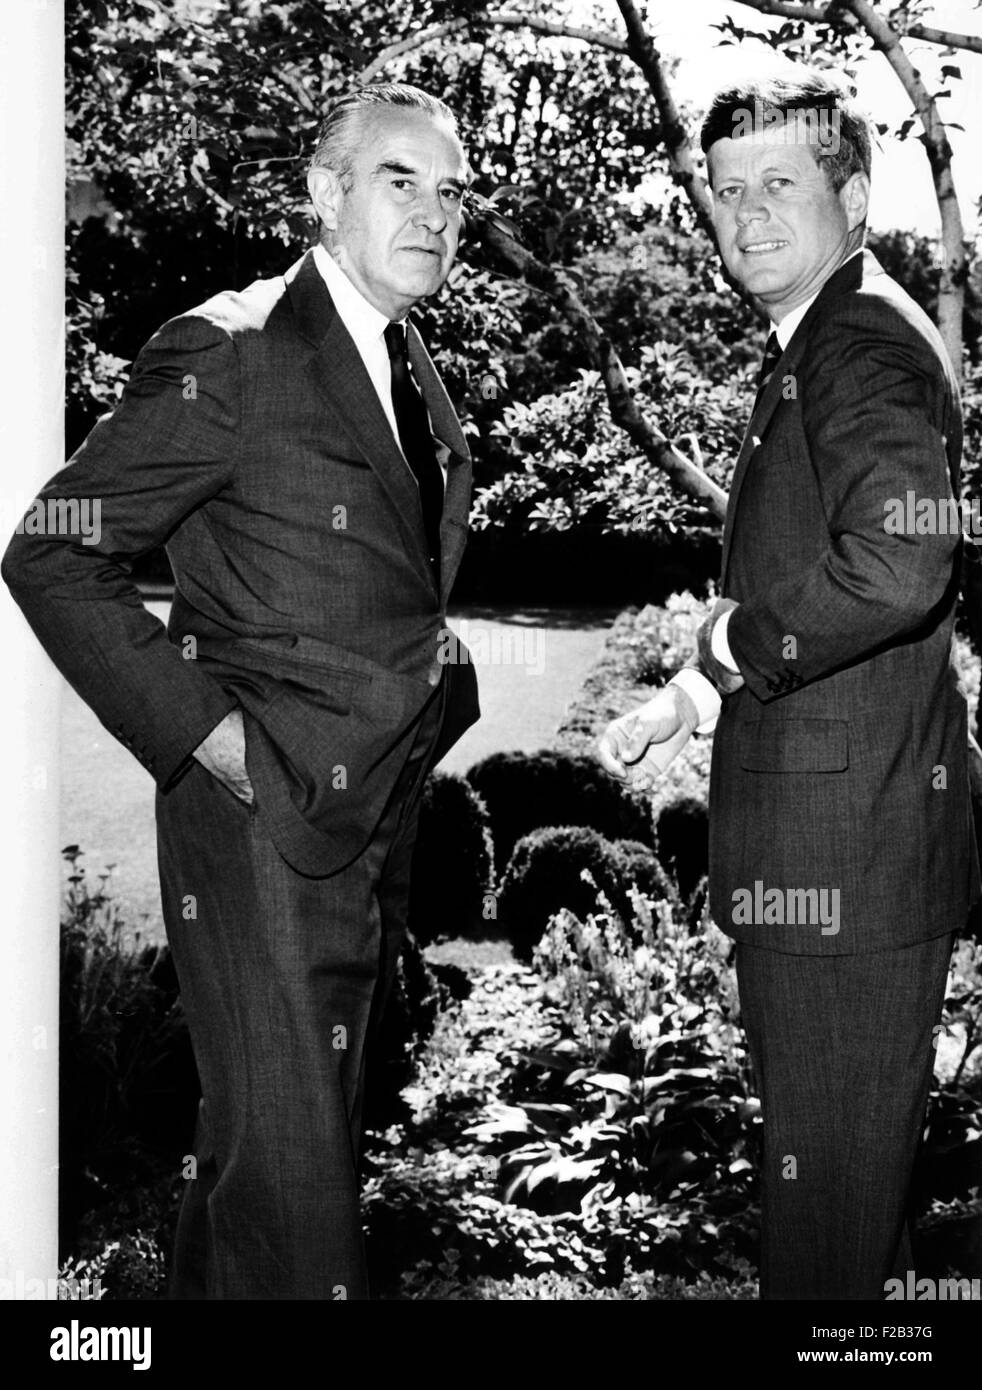 President John Kennedy and Averill Harriman outside the President's West Wing office. July 18, 1963. In addition - Stock Image